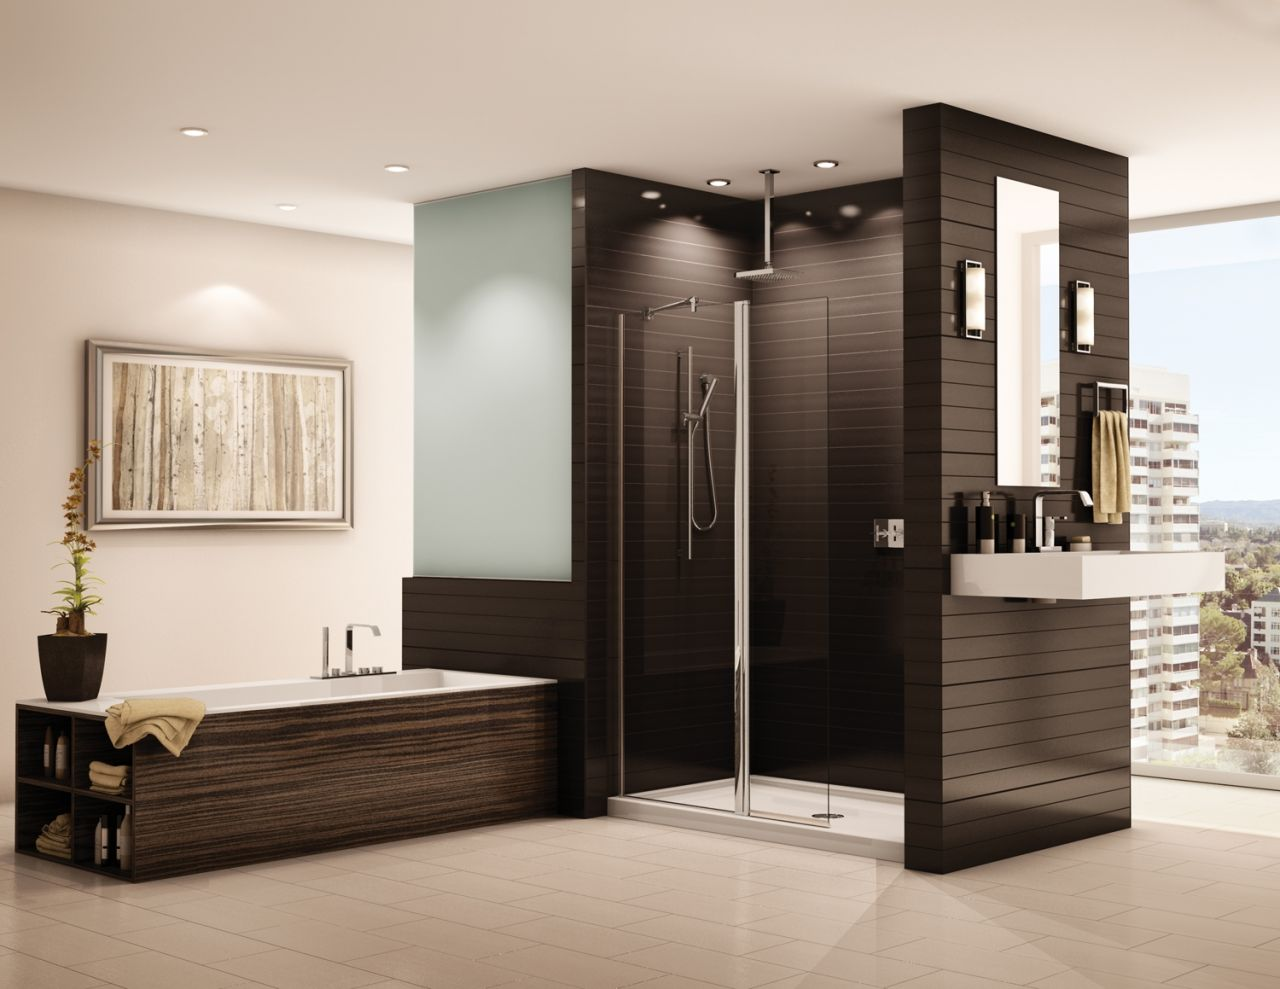 Semi-frameless in line pivot shower screen with rectangular acrylic pan in a contemporary bathroom